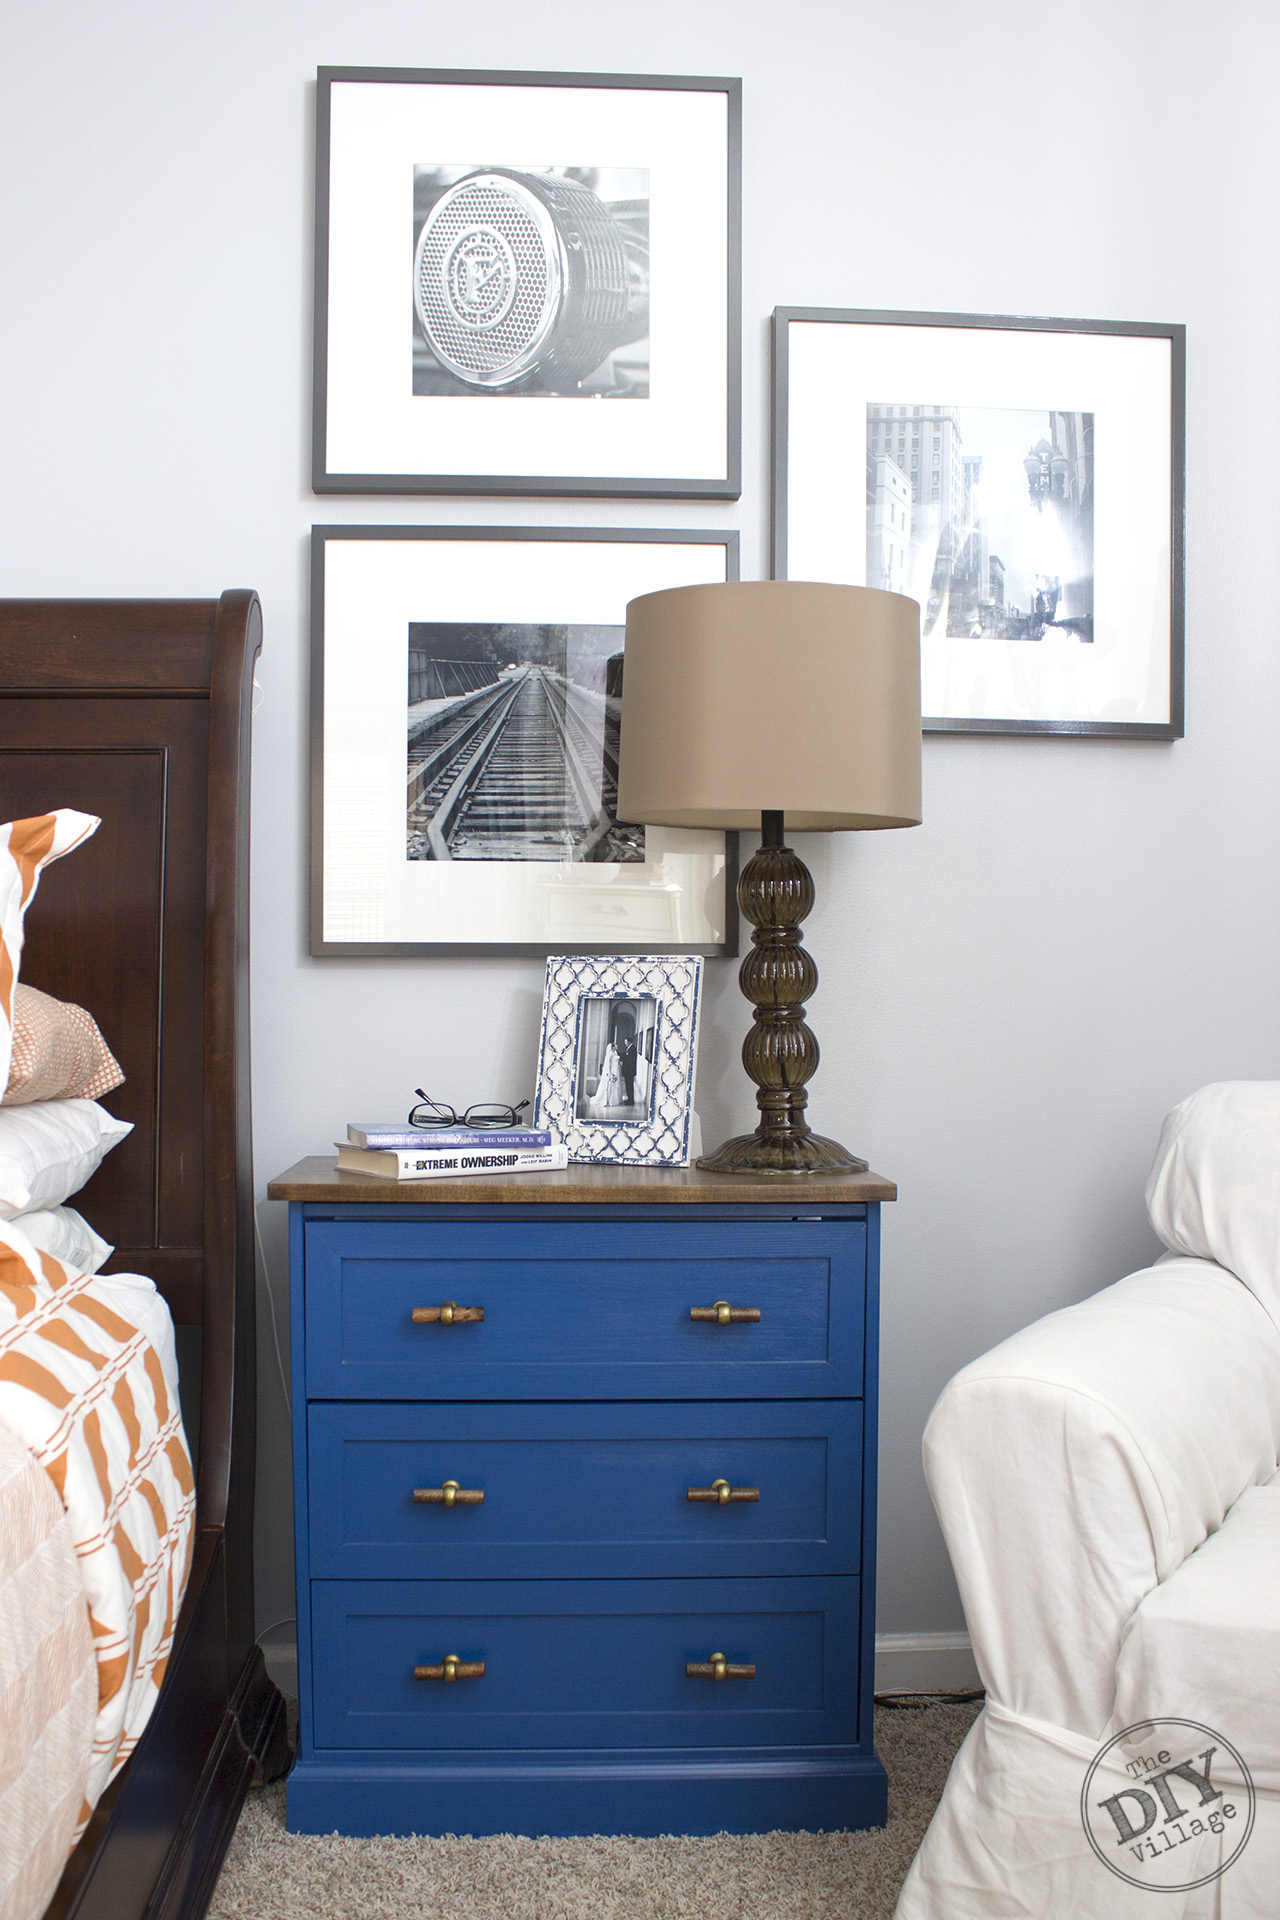 Ikea Rast From Dresser To Nightstand Ikea Rast Makeover The Diy Village